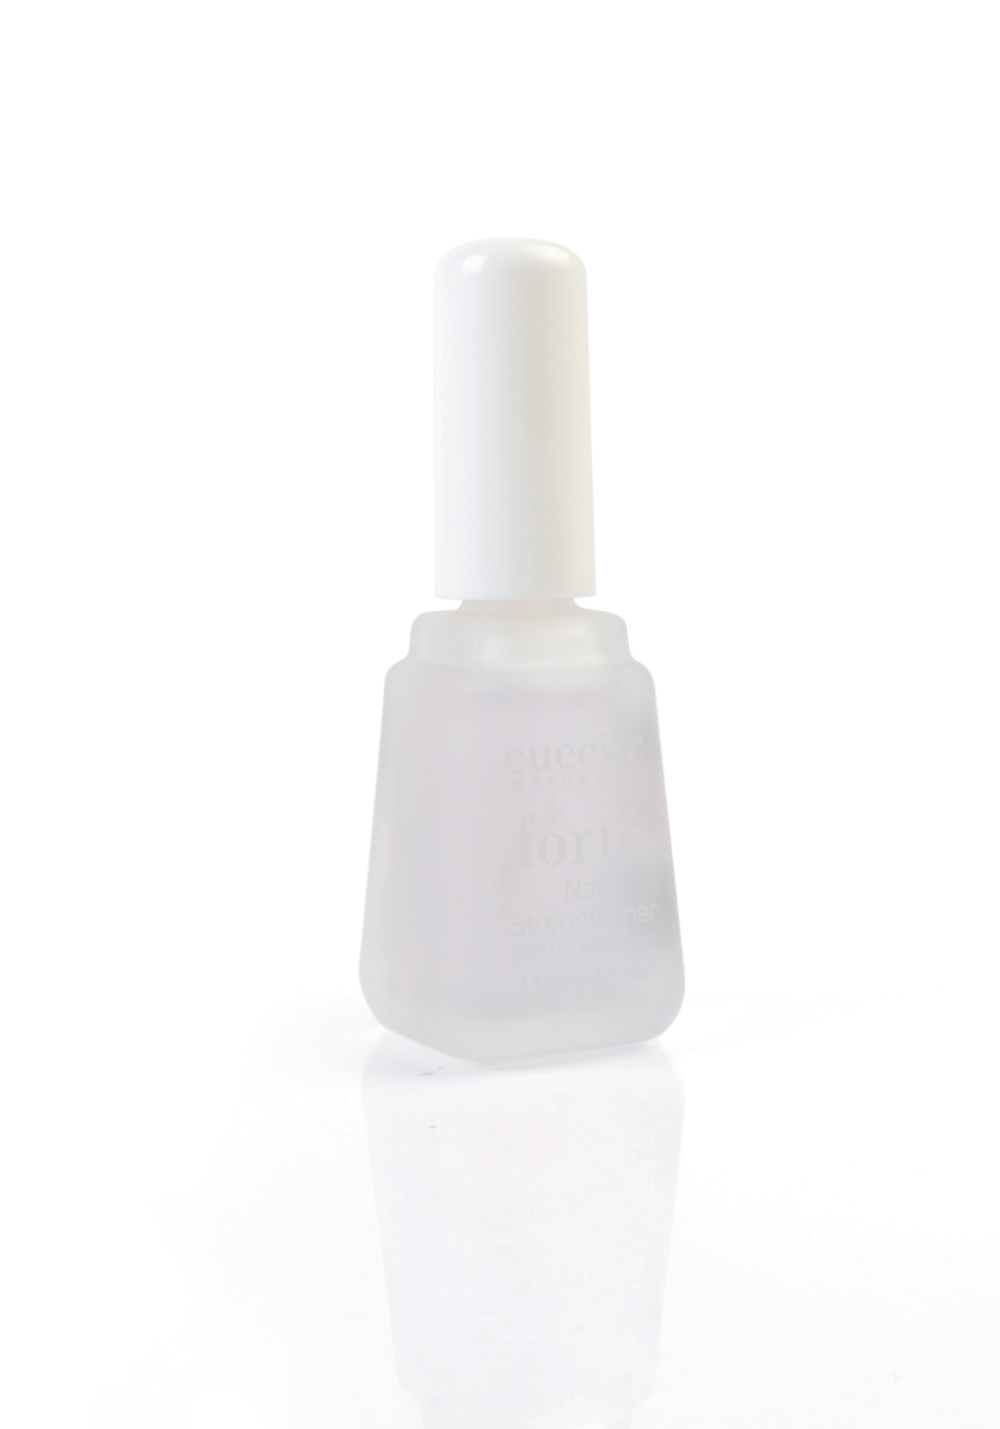 "<p>Cuccio Forte Nail Strengthener<br /><a href=""http://www.cuccio.com"">www.cuccio.com</a><br /><br /></p>"